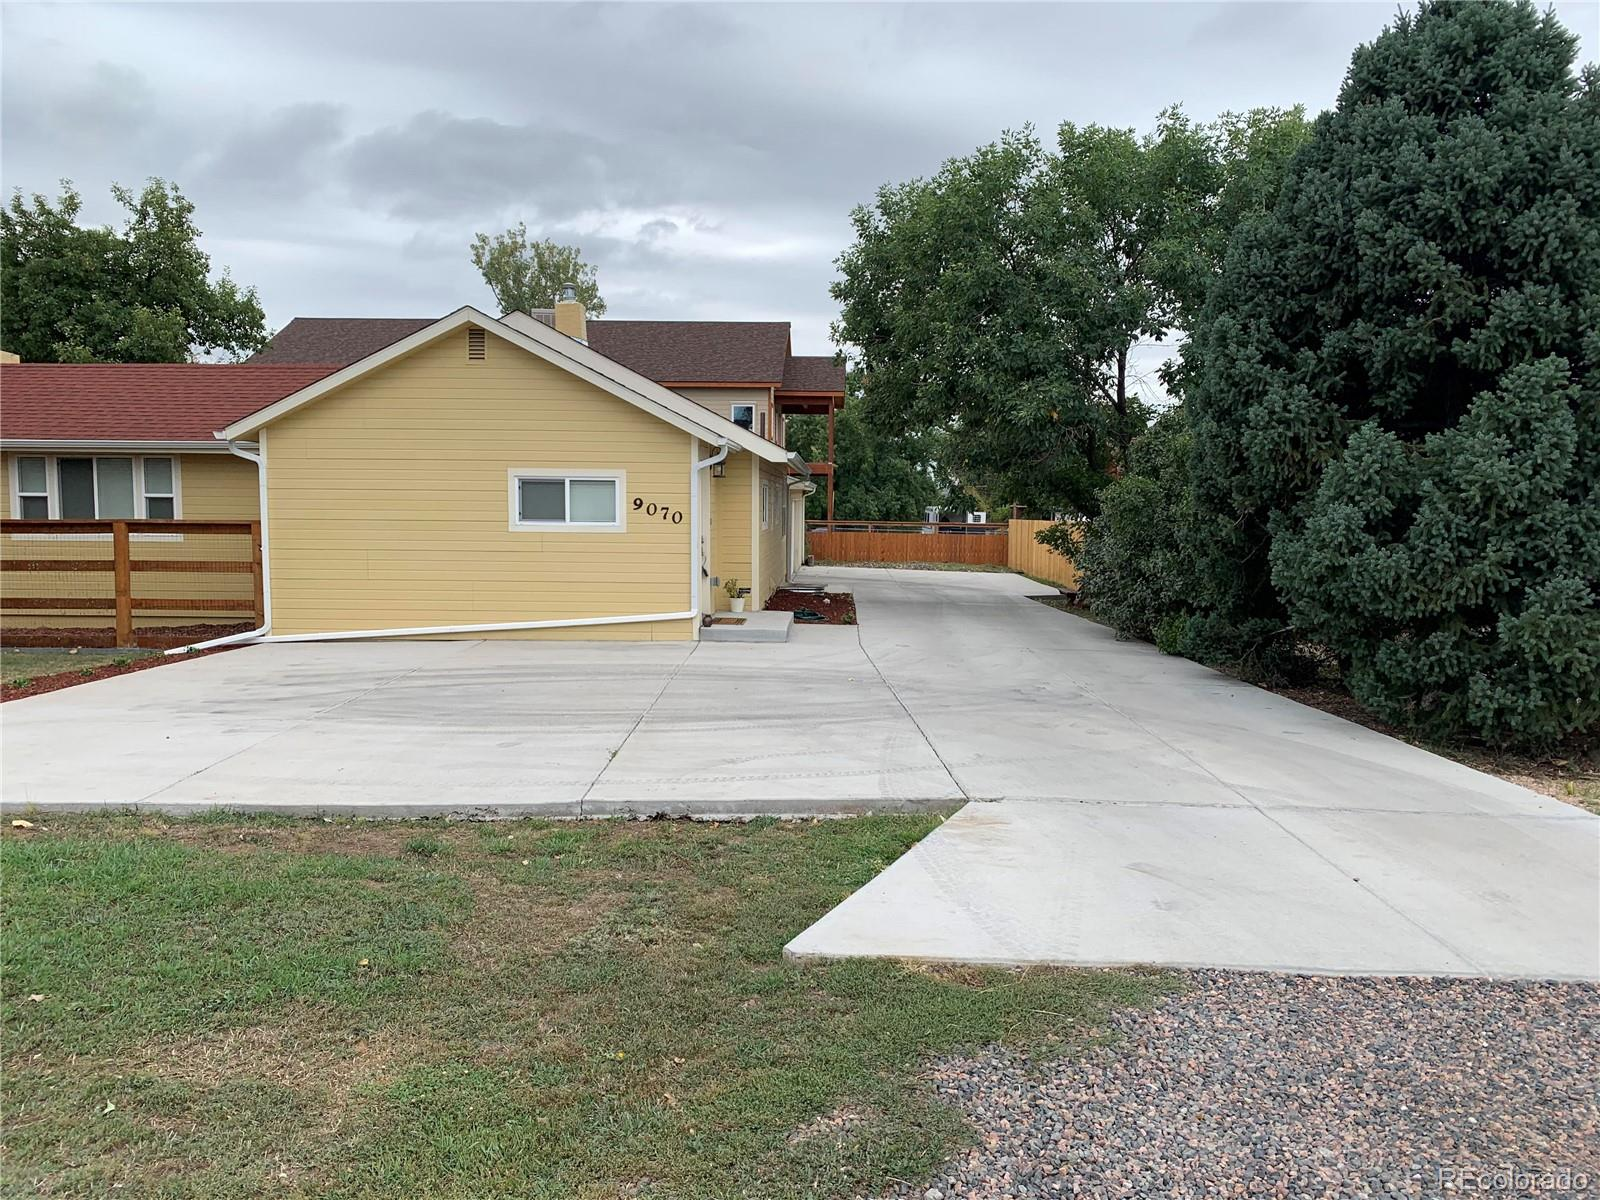 Photo of 9070 W 64th Place, Arvada, CO 80004